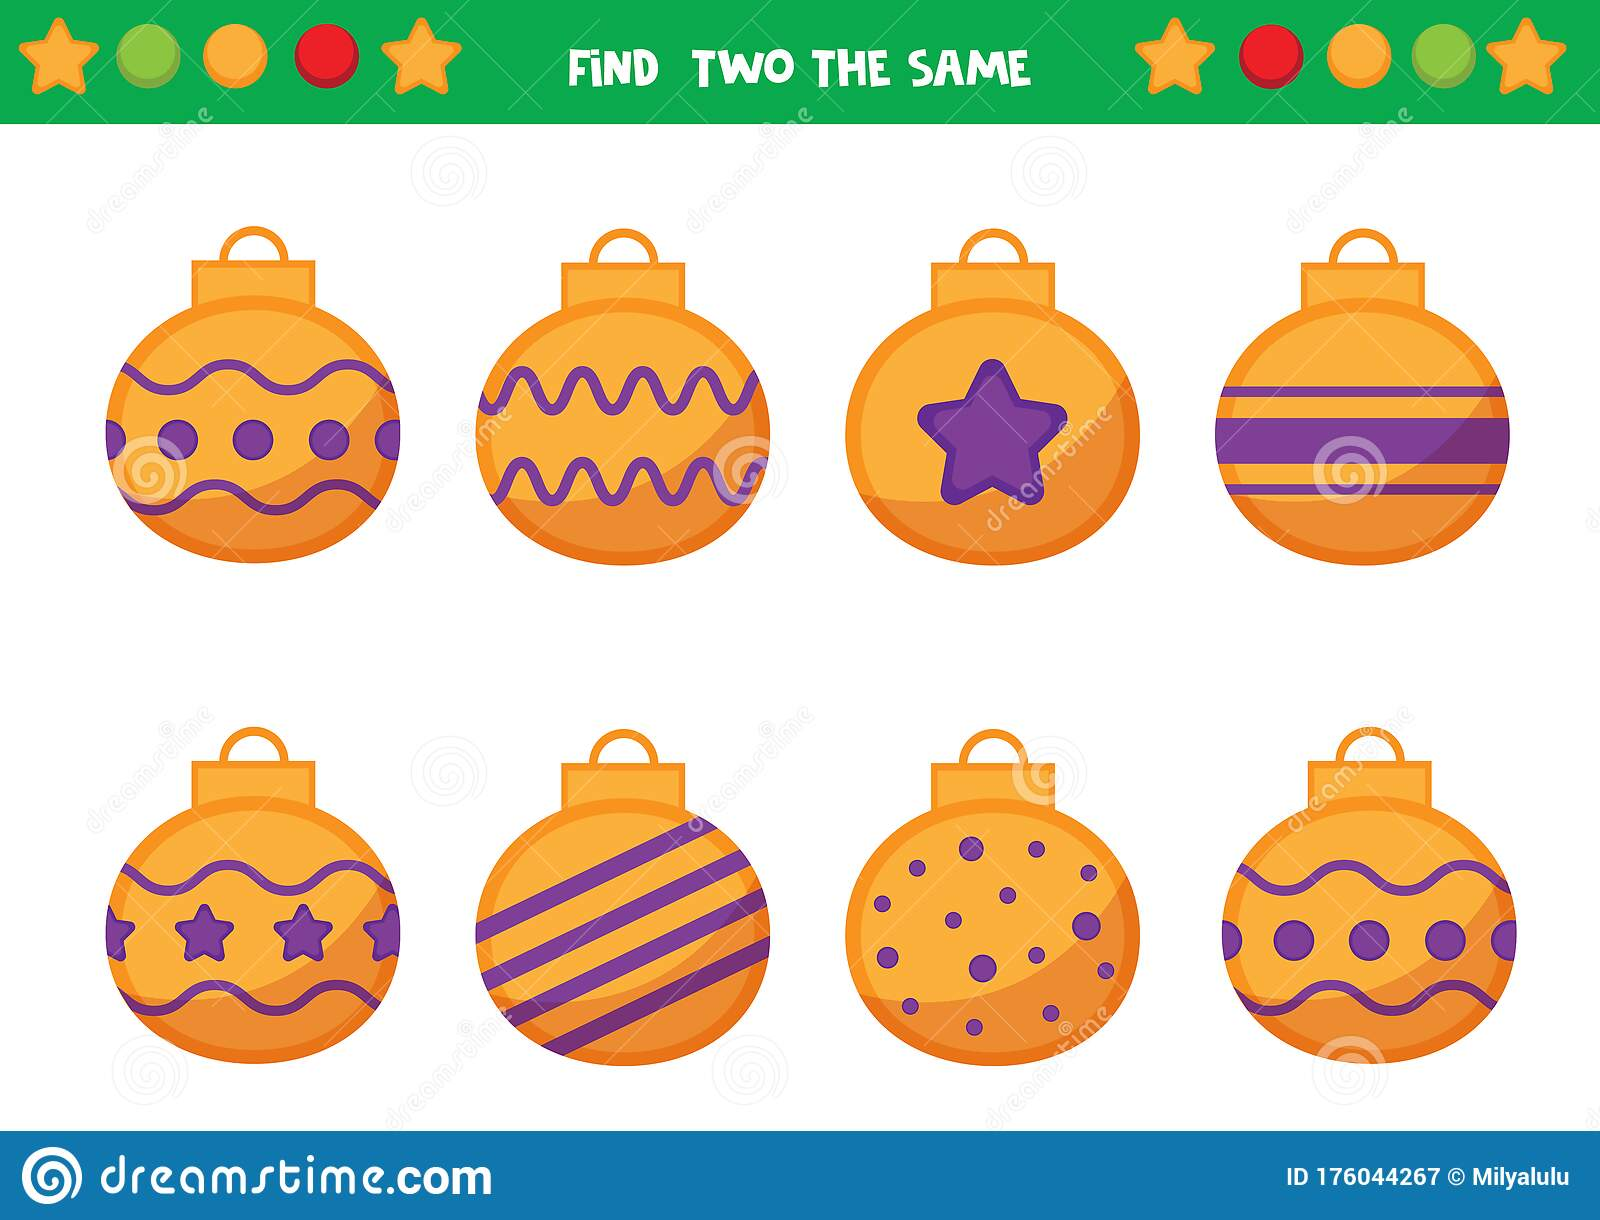 Christmas Worksheet For Preschool Children Find Two The